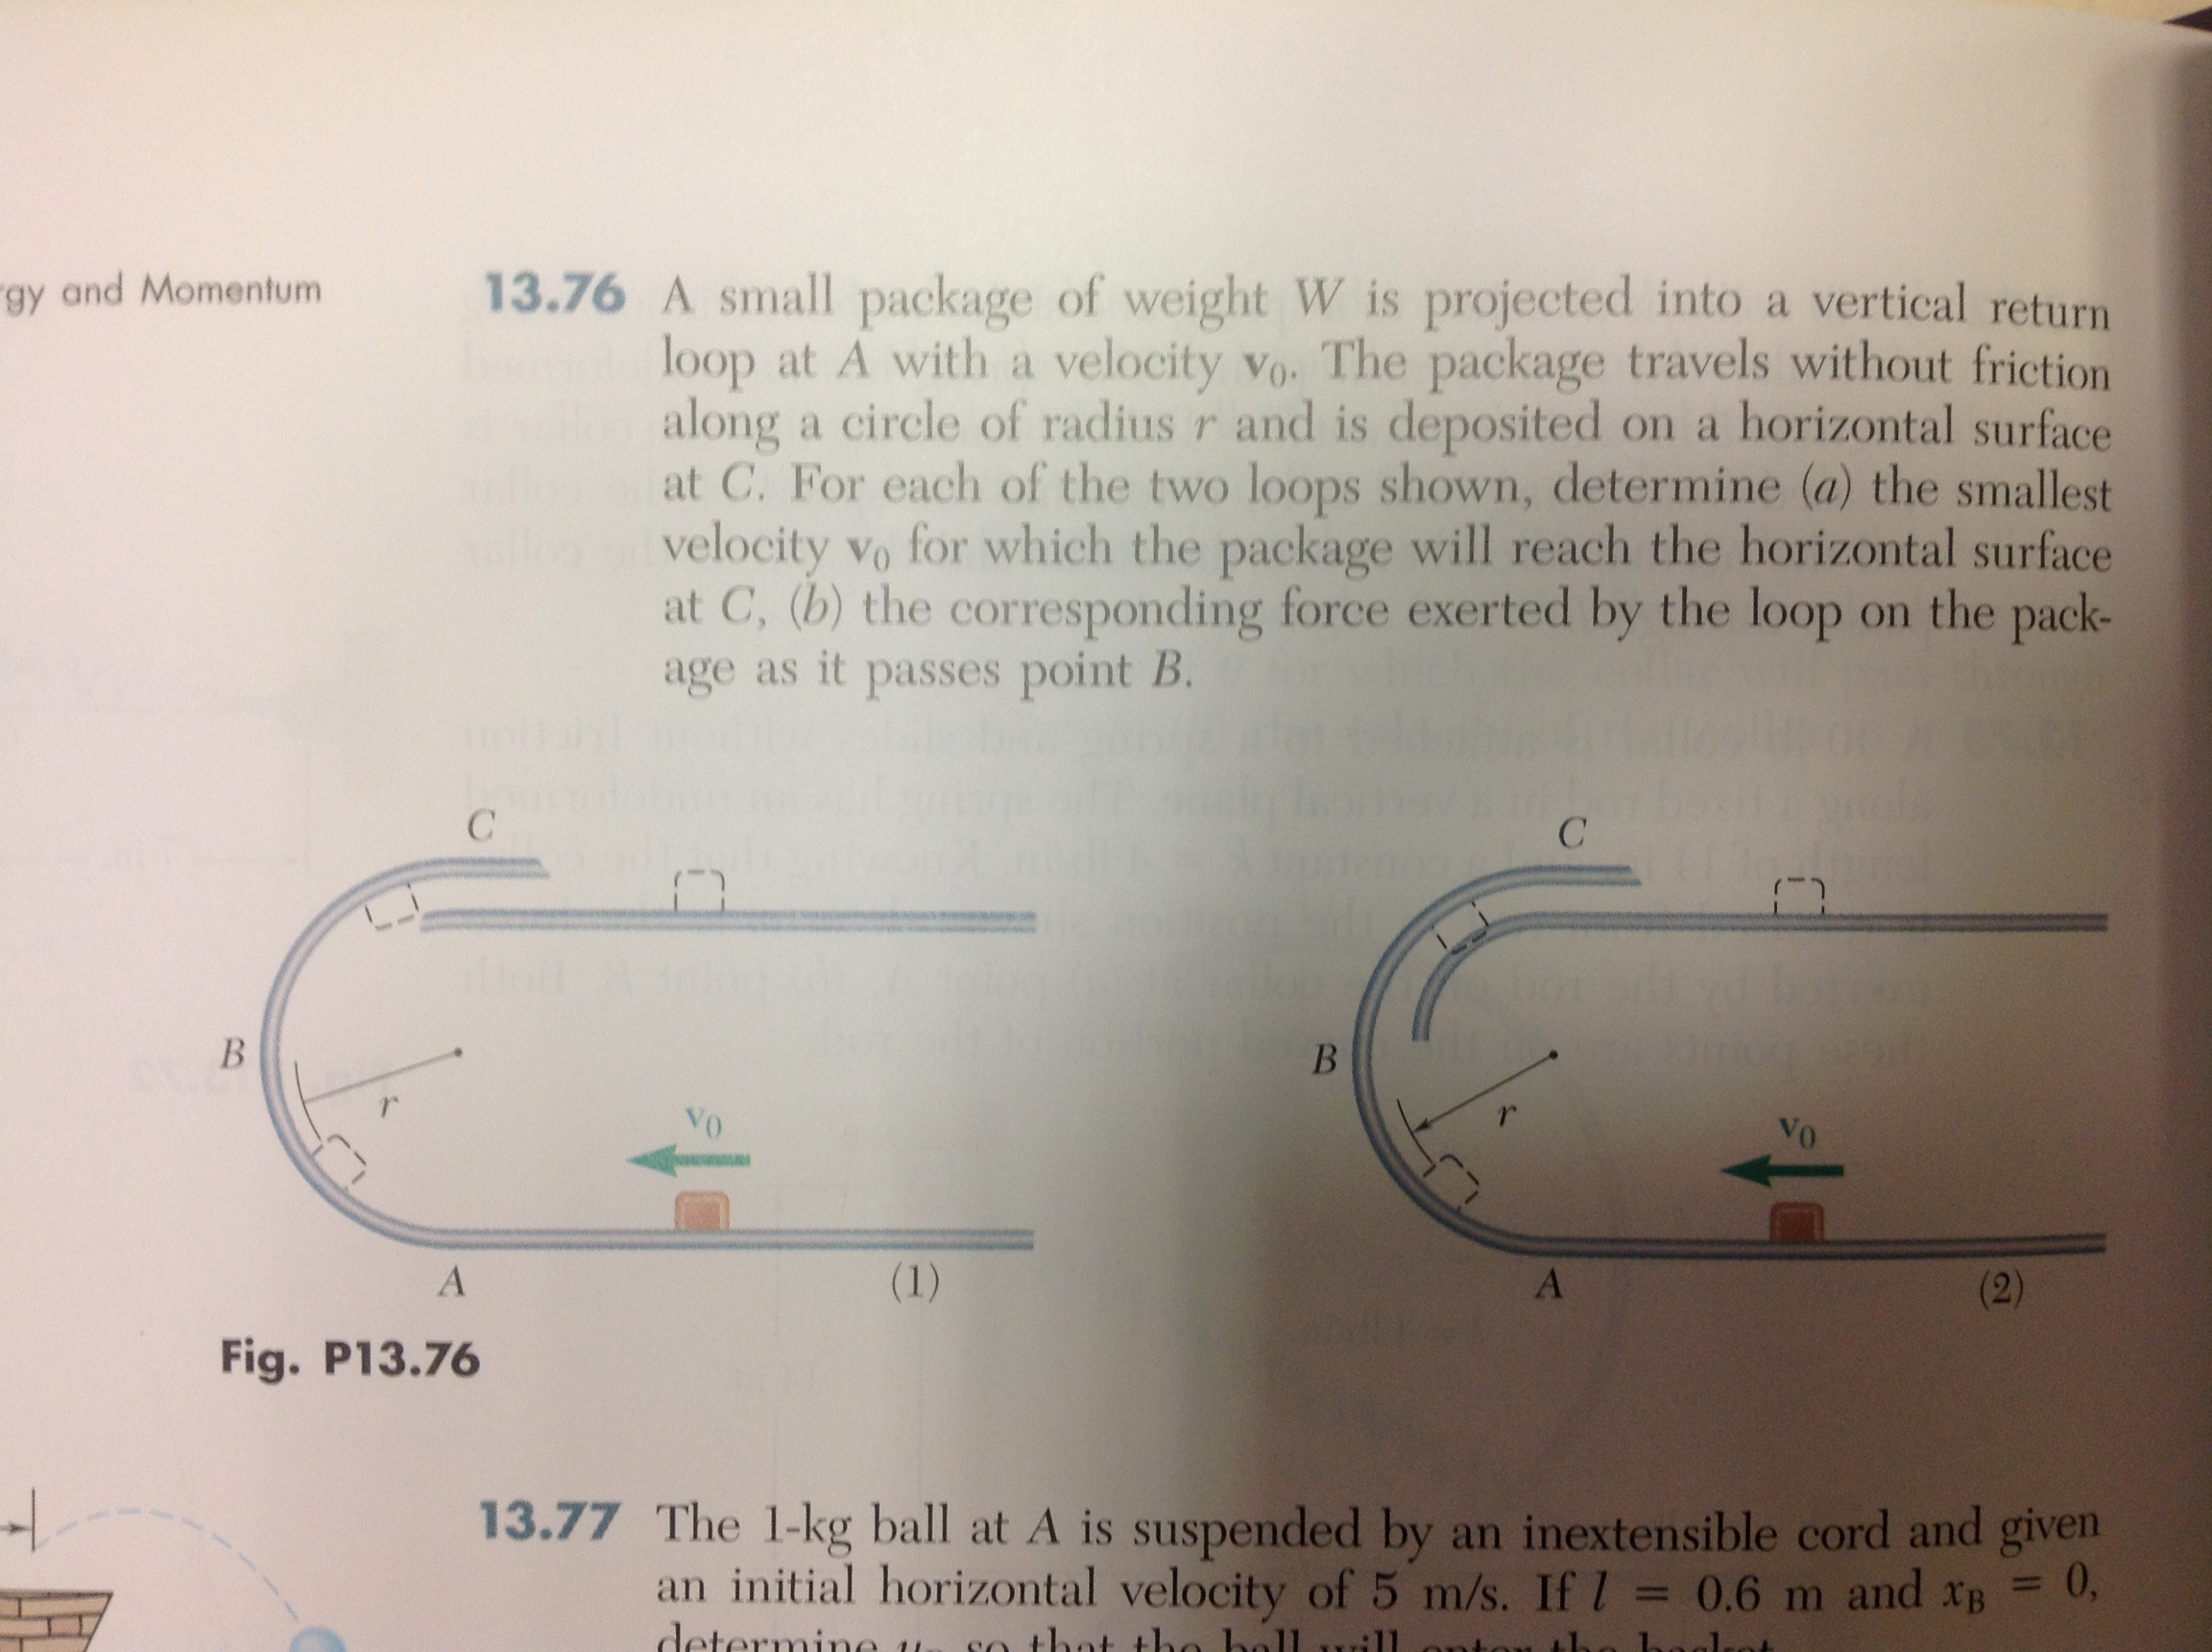 A small package of weight W is projected into a ve